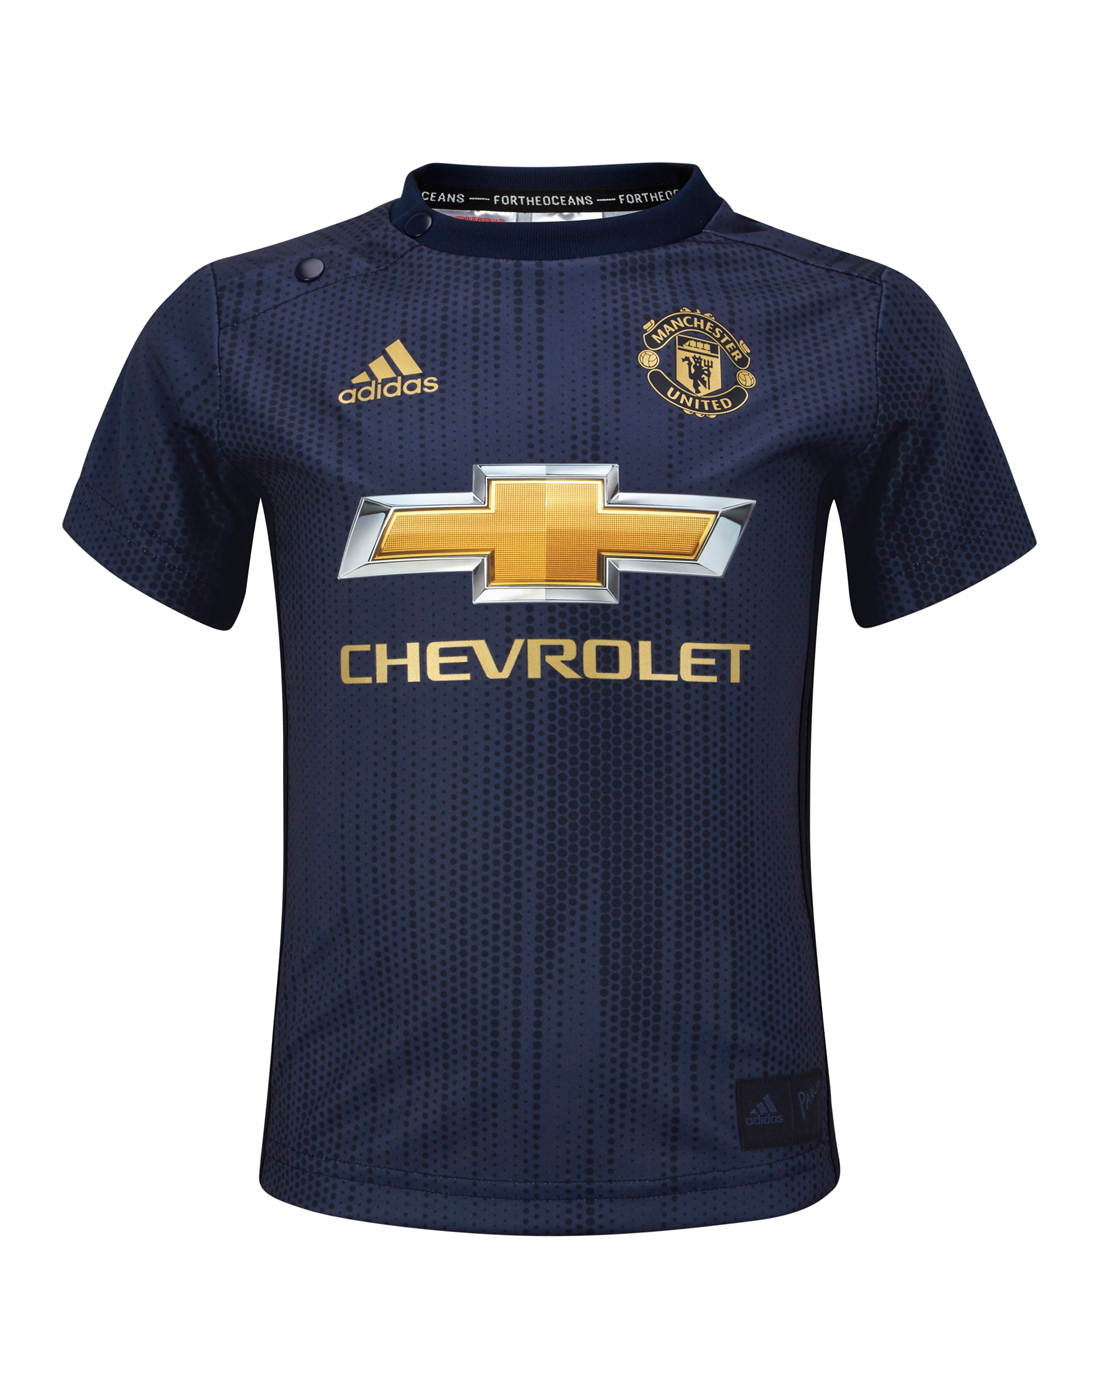 new product 27617 57fdd Infants Man United 18/19 Kit | adidas | Life Style Sports